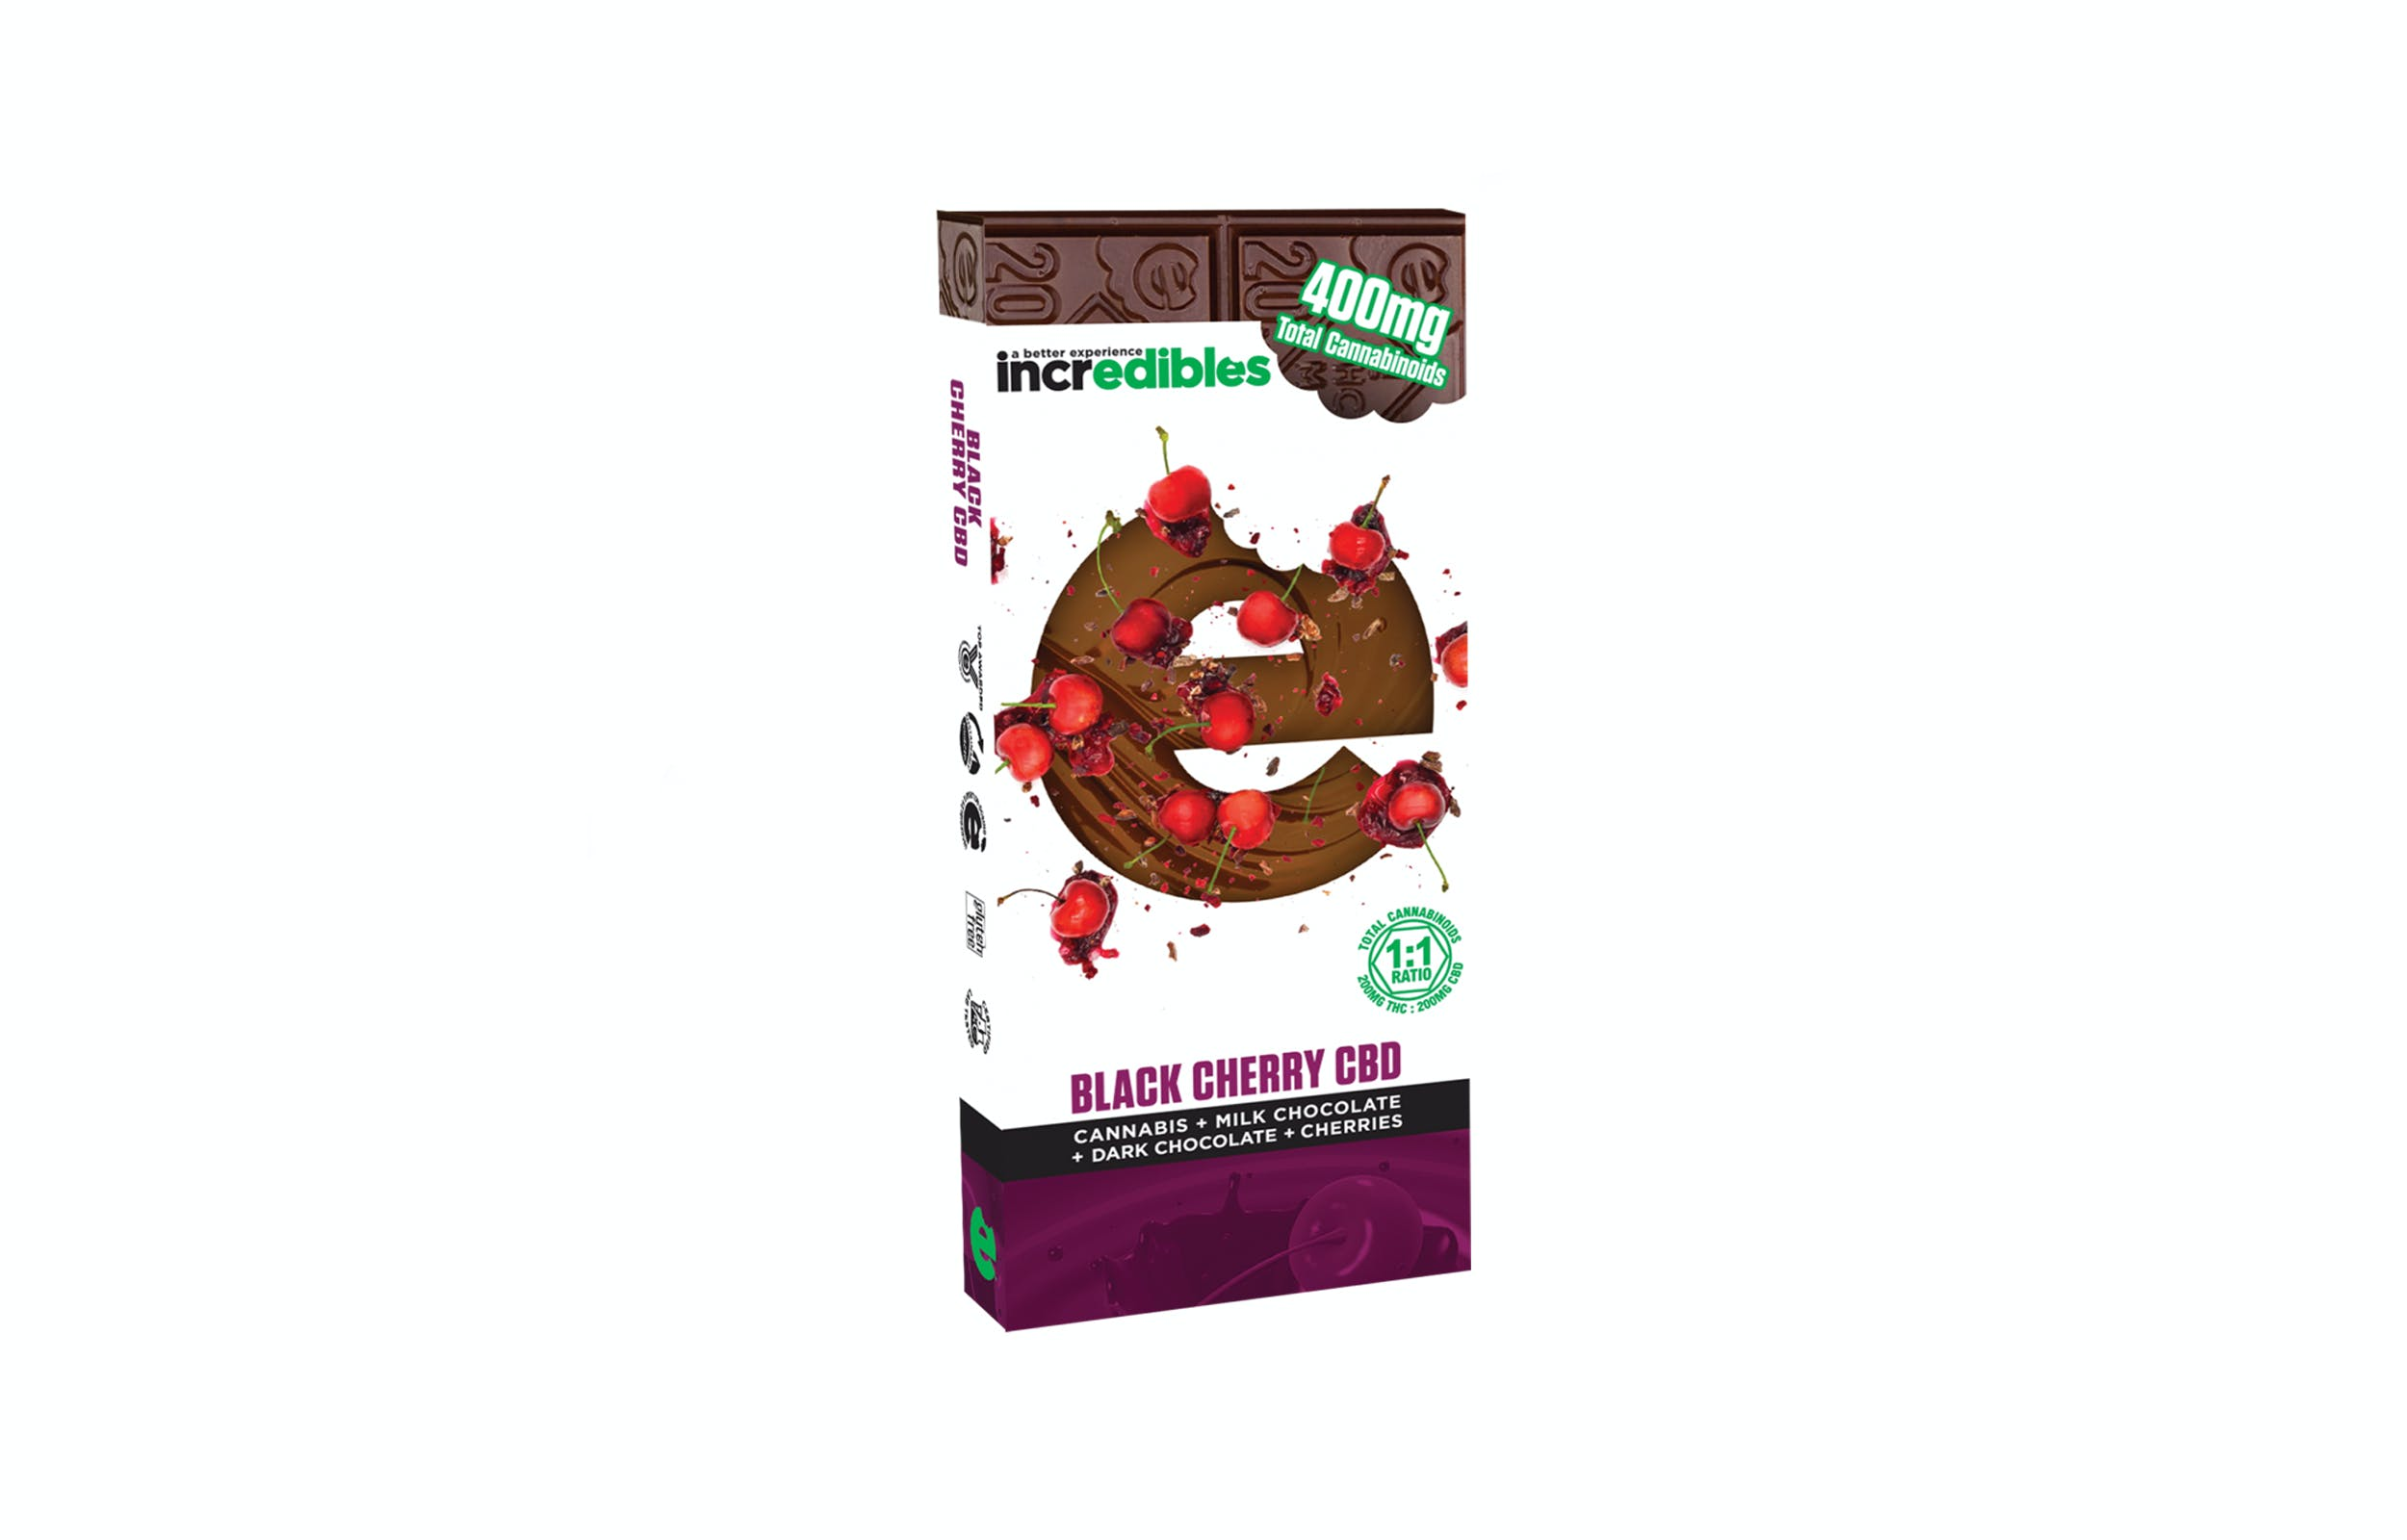 Holiday Gift Guide Black Cherry CBD Get the Whole Family High With Herbs Holiday Gift Guide